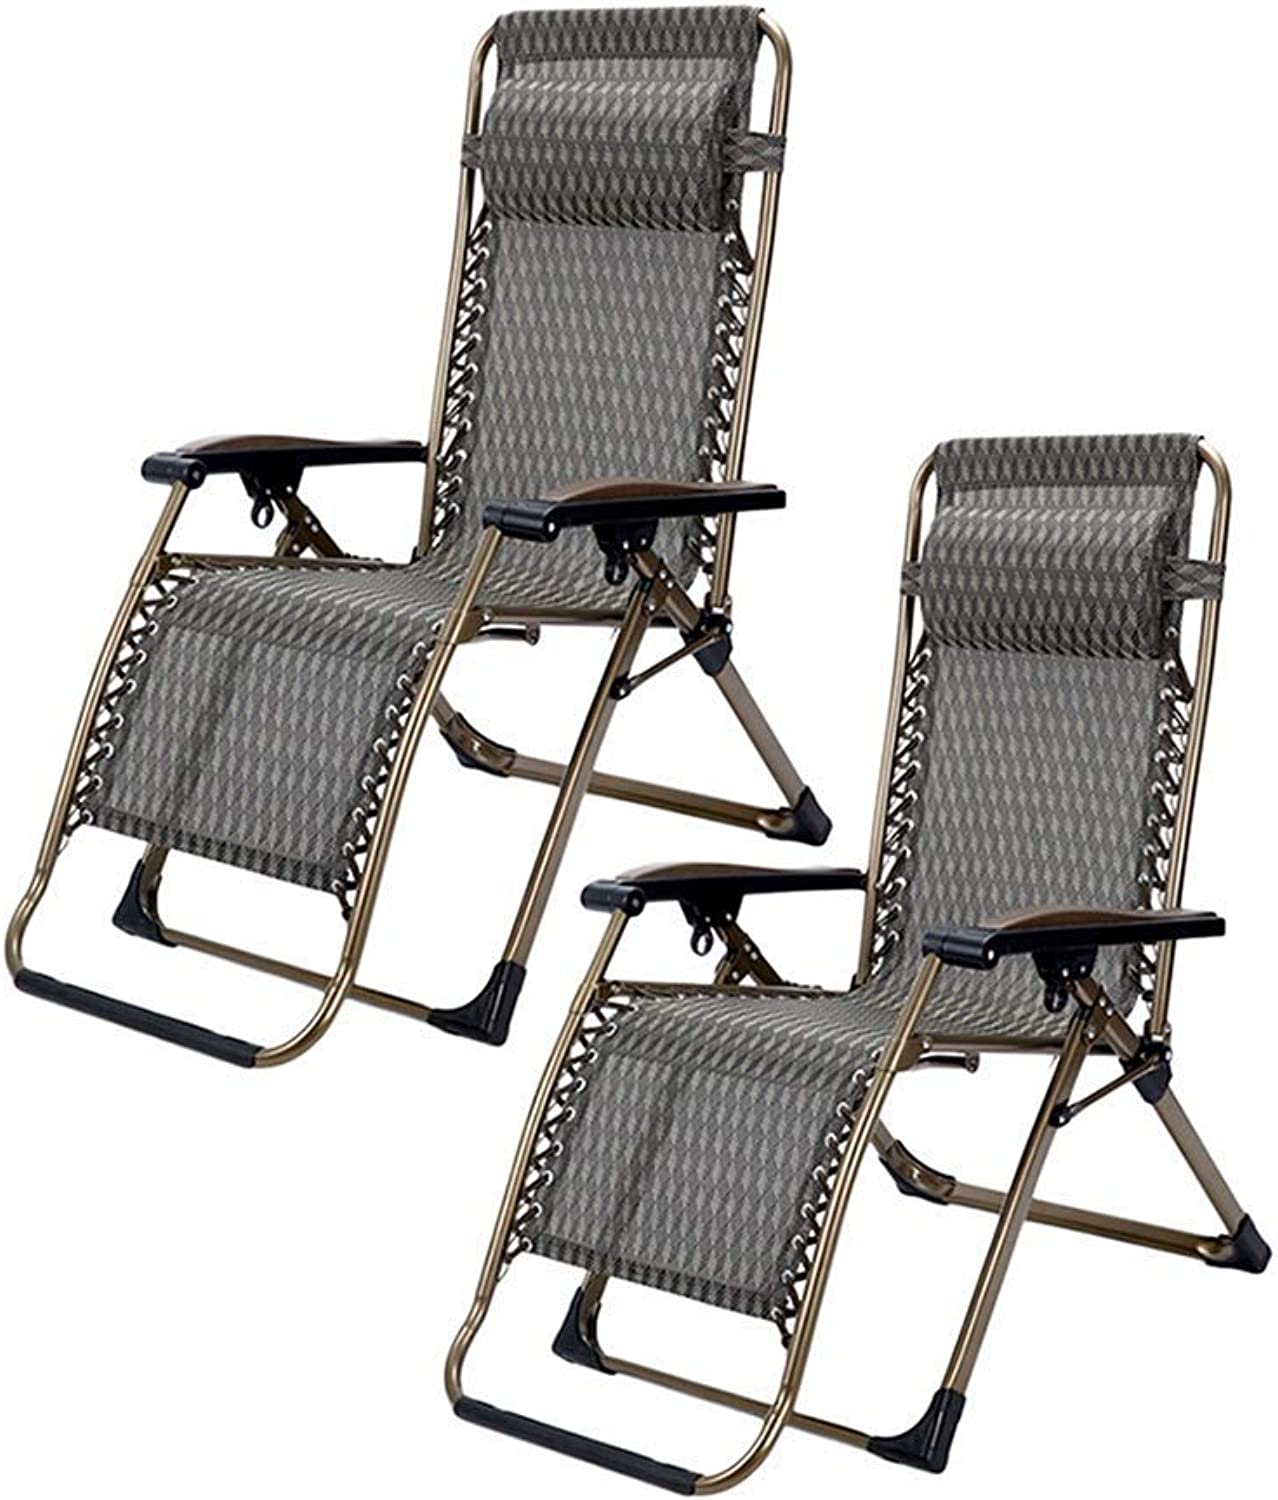 Set of 2 Oversized Patio Reclining Zero Gravity Chair for Heavy Duty People, Outdoor Garden Yard Beach Lawn Camping Pool Side Deck Portable Chair, Support 300kg,B